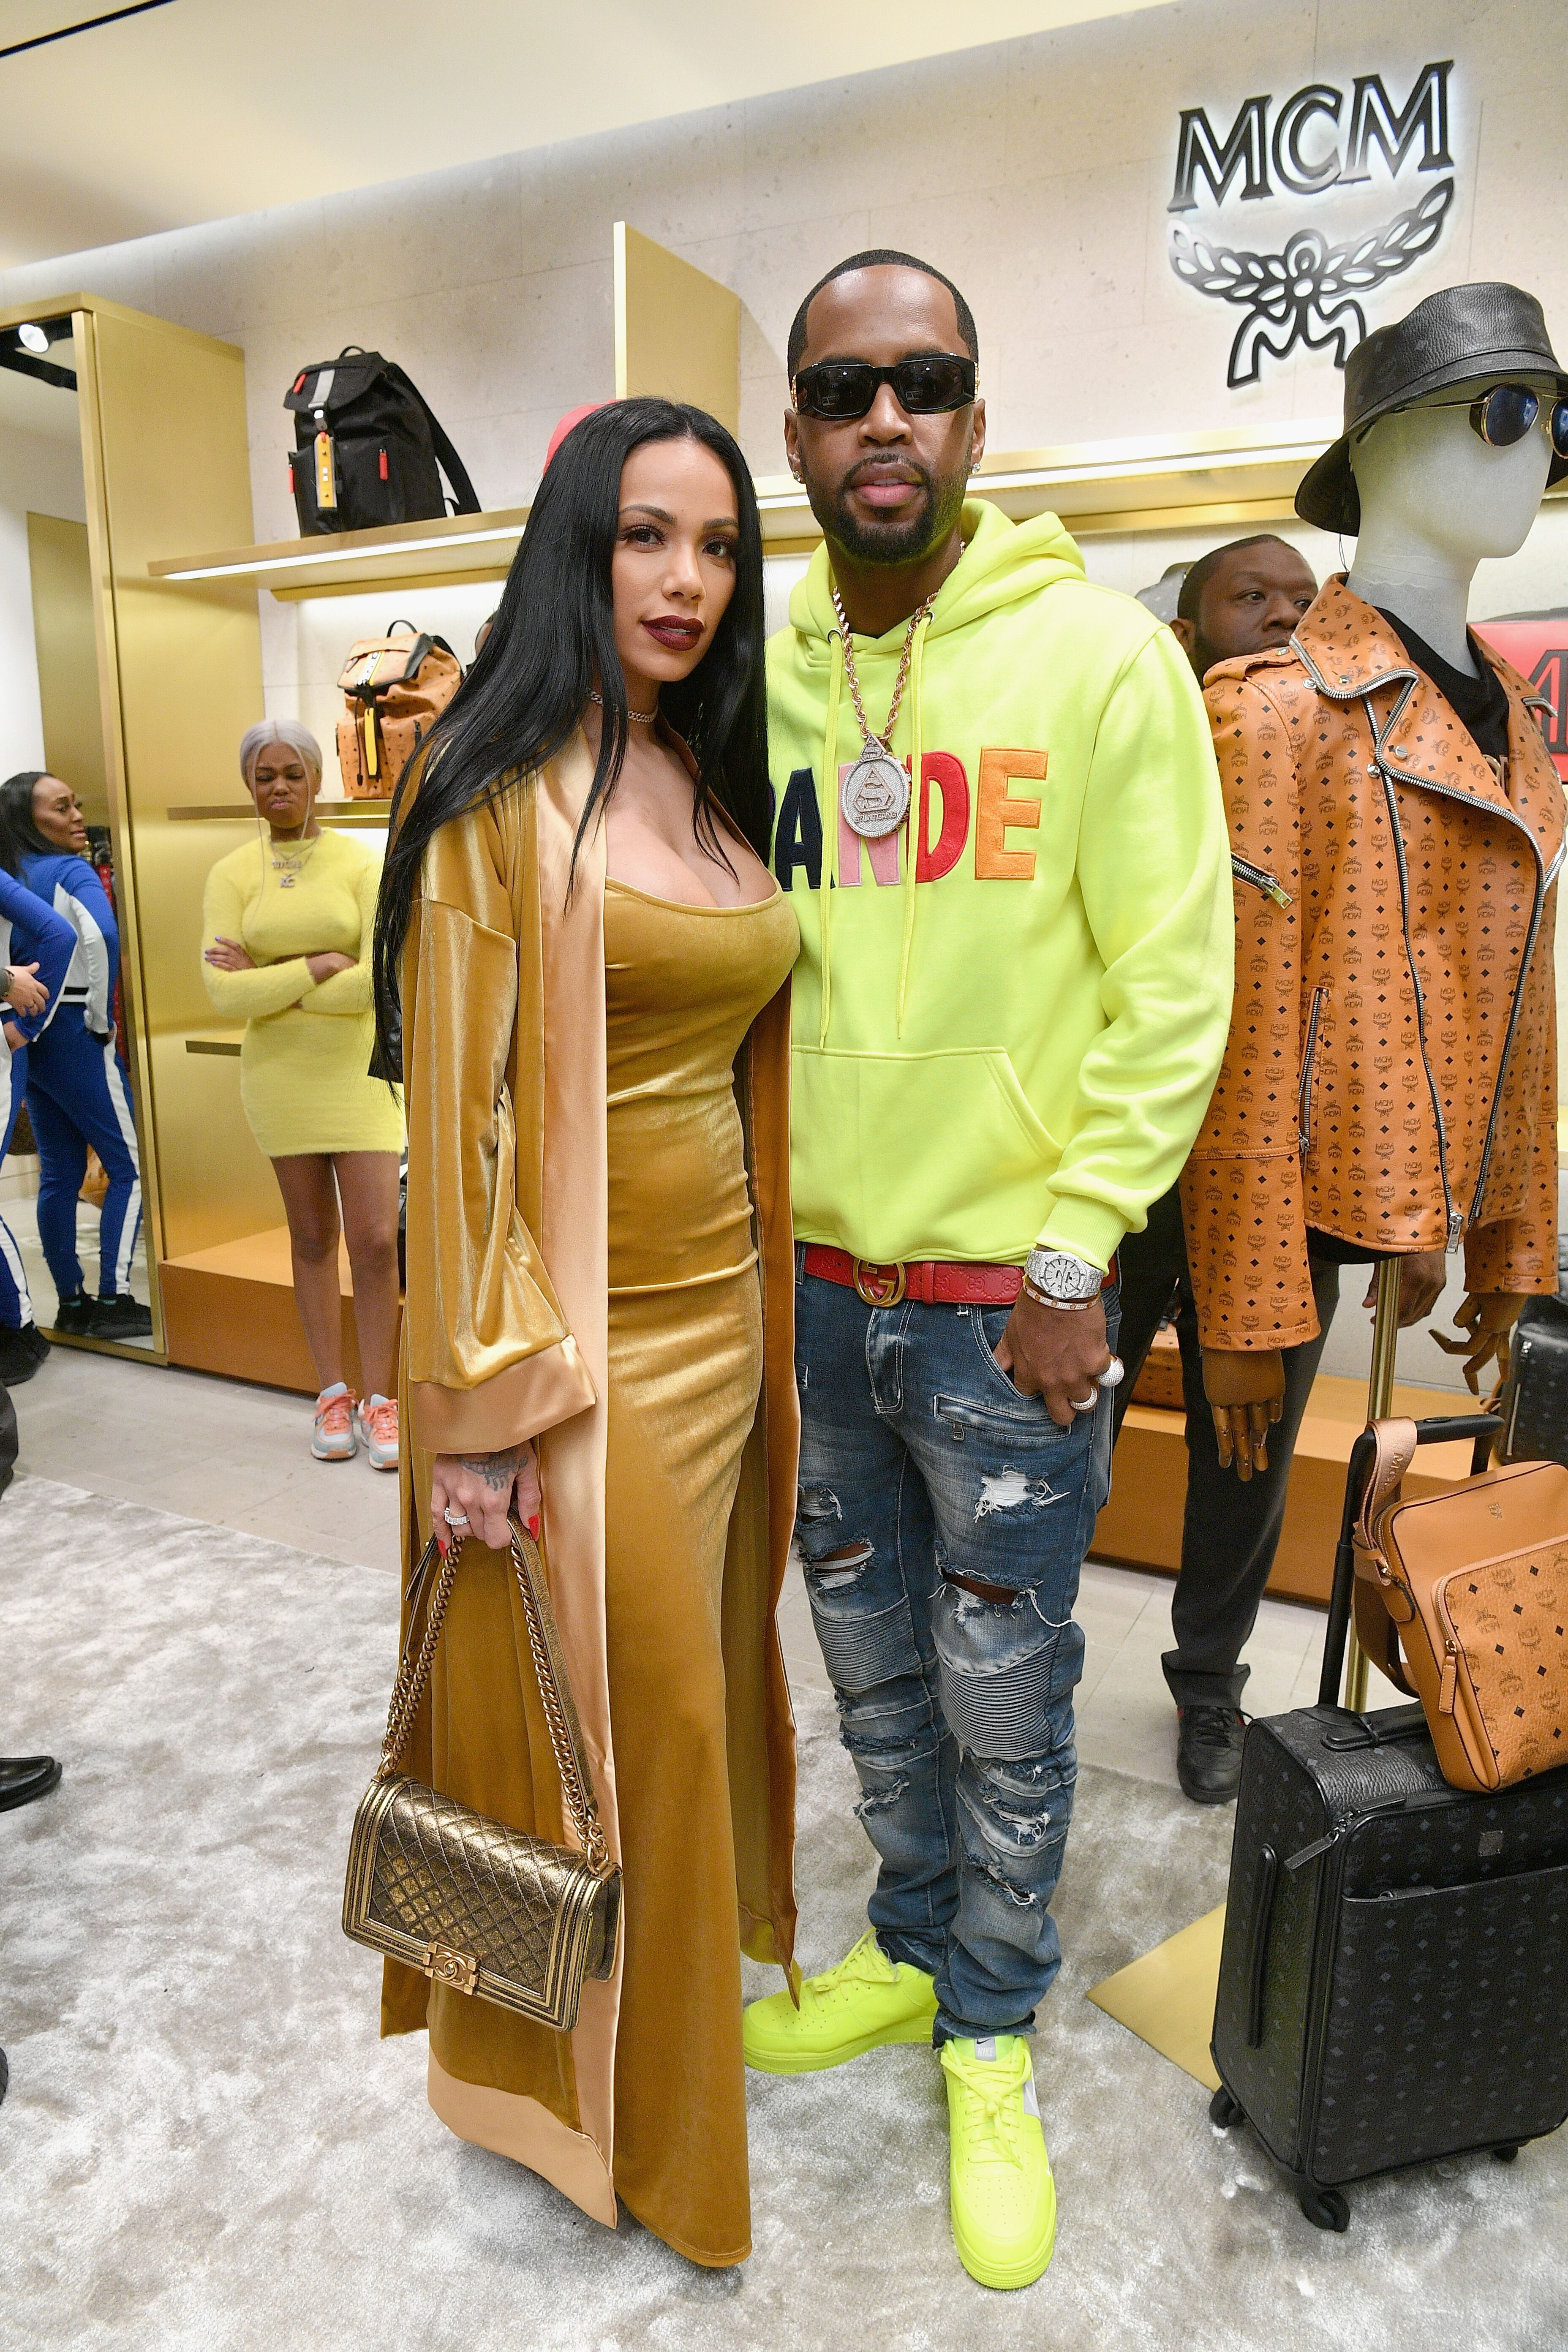 Safaree Samuels and Erica Mena out shopping at MCM/ Source: Getty Images